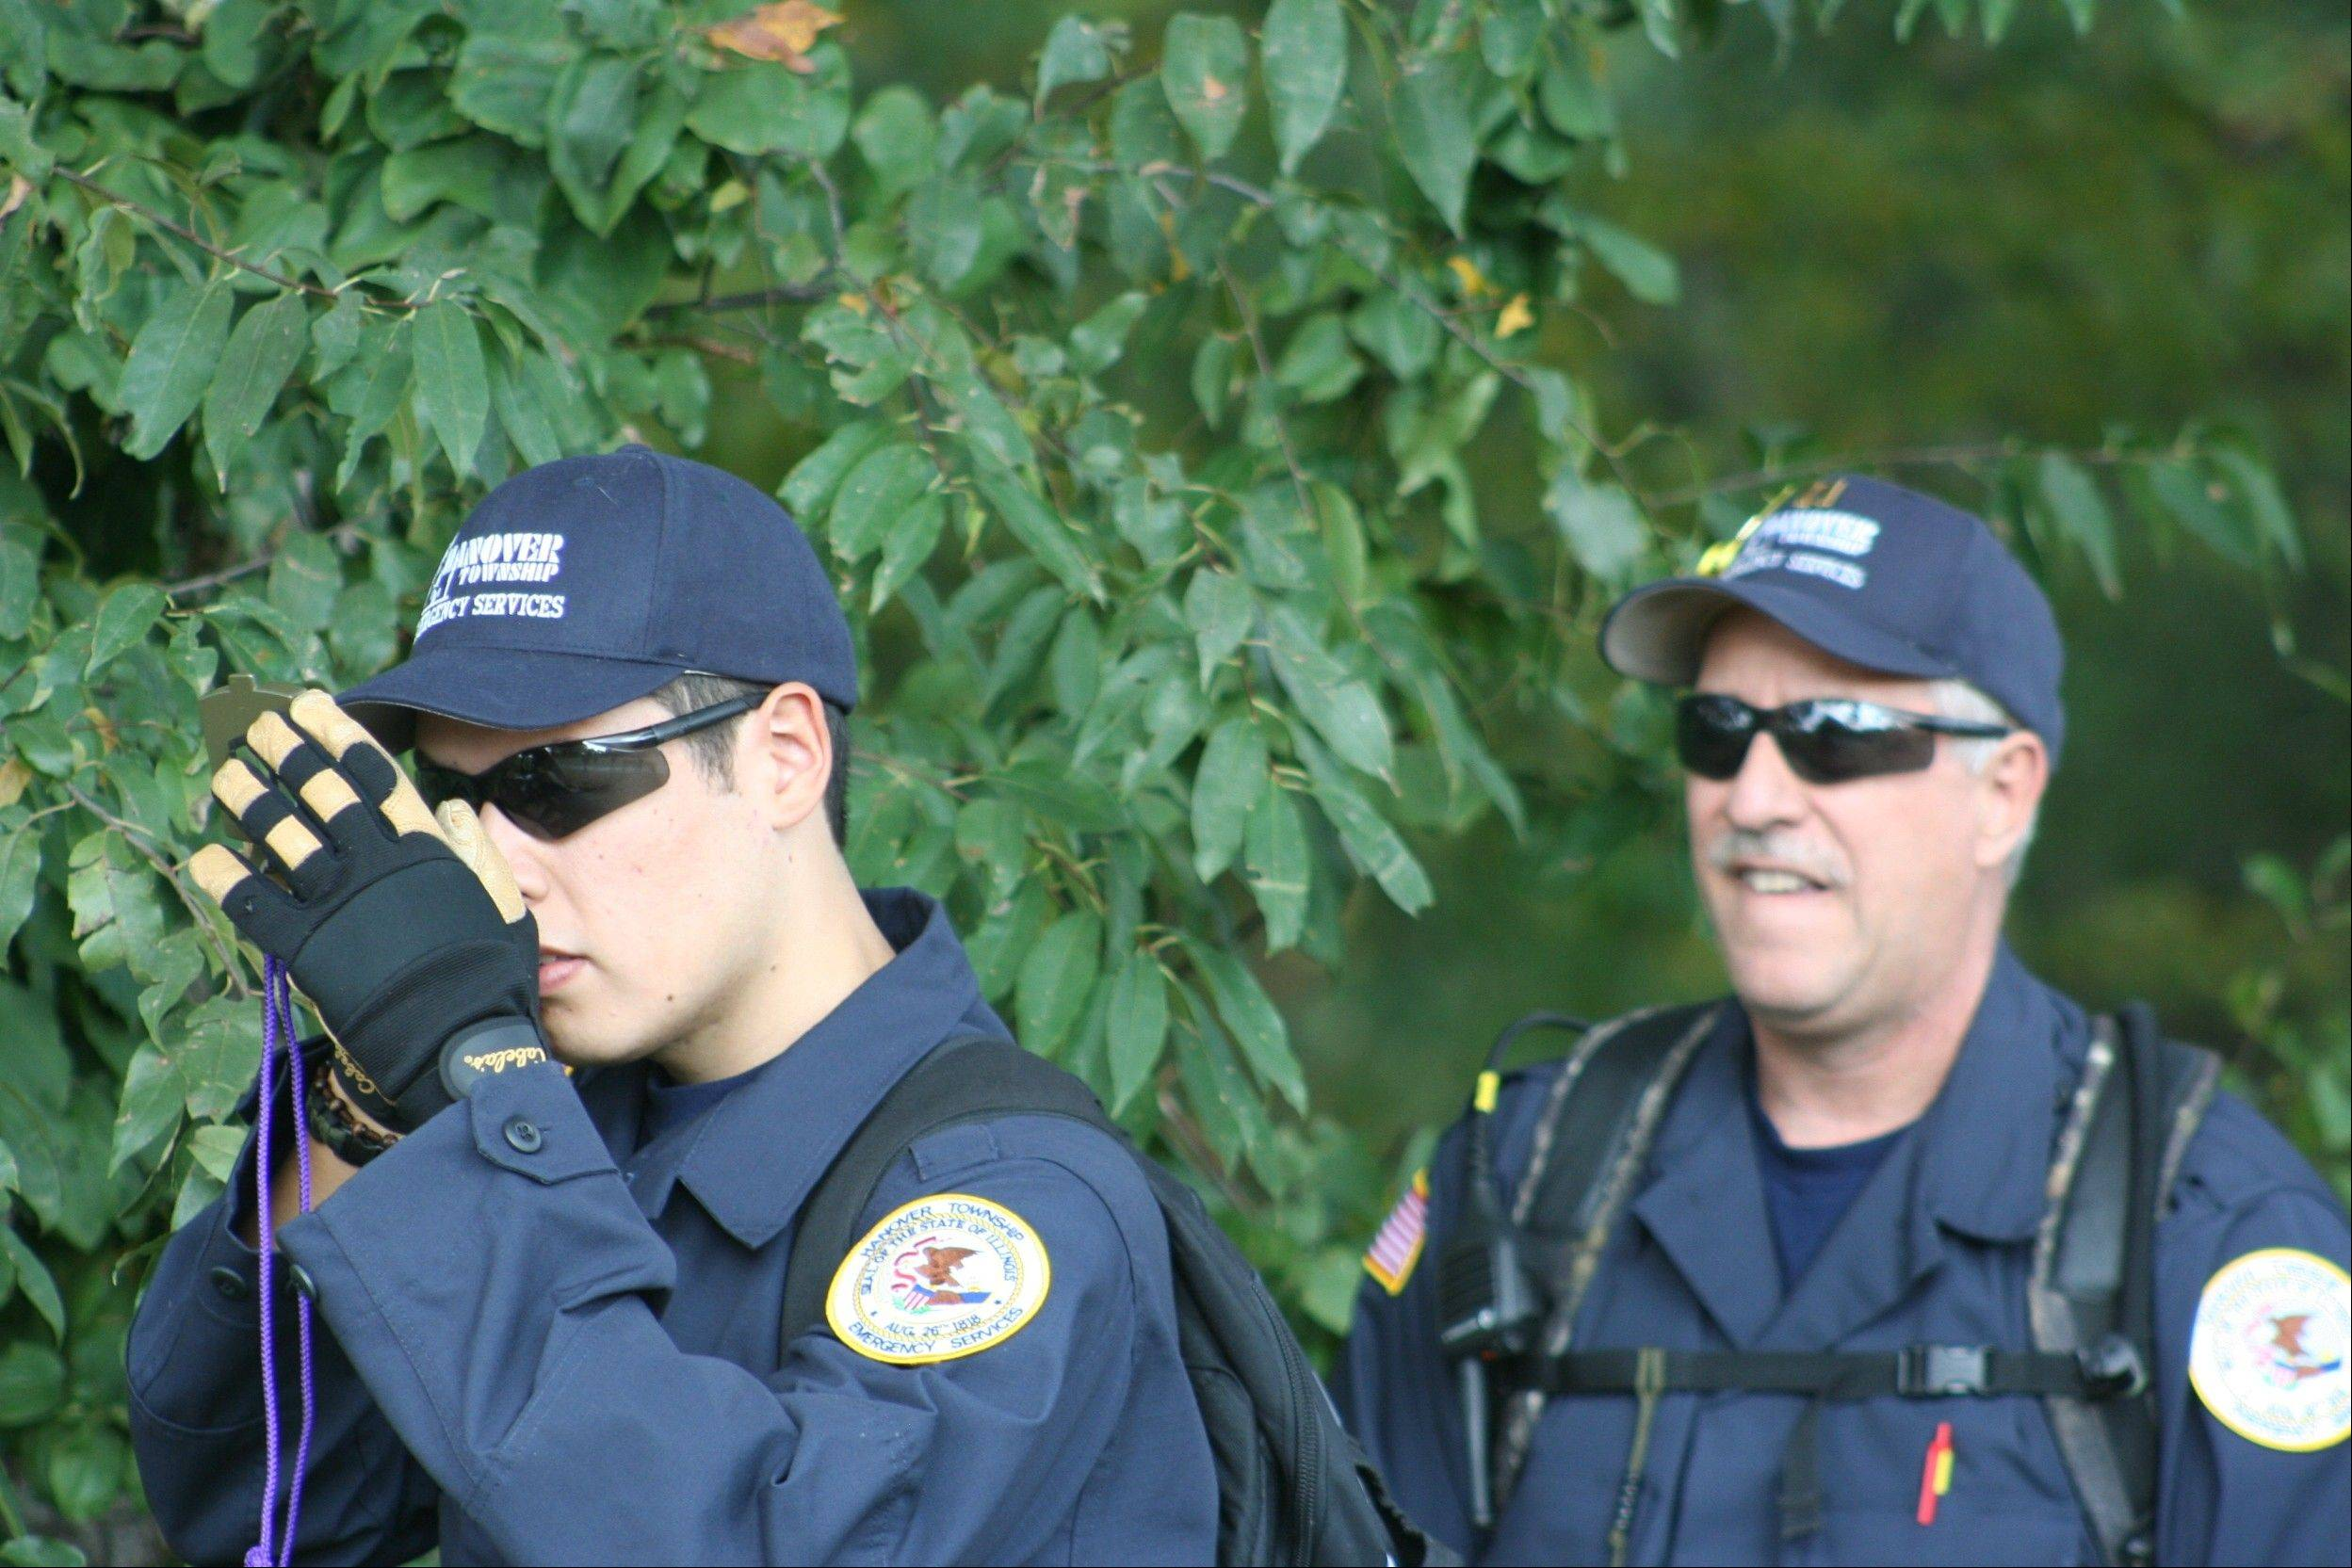 Hanover Township Emergency Services volunteers Eddie Fausto, left, and Bill Potas on the full search exercise for their validation at Mather Woods in Plainfield.